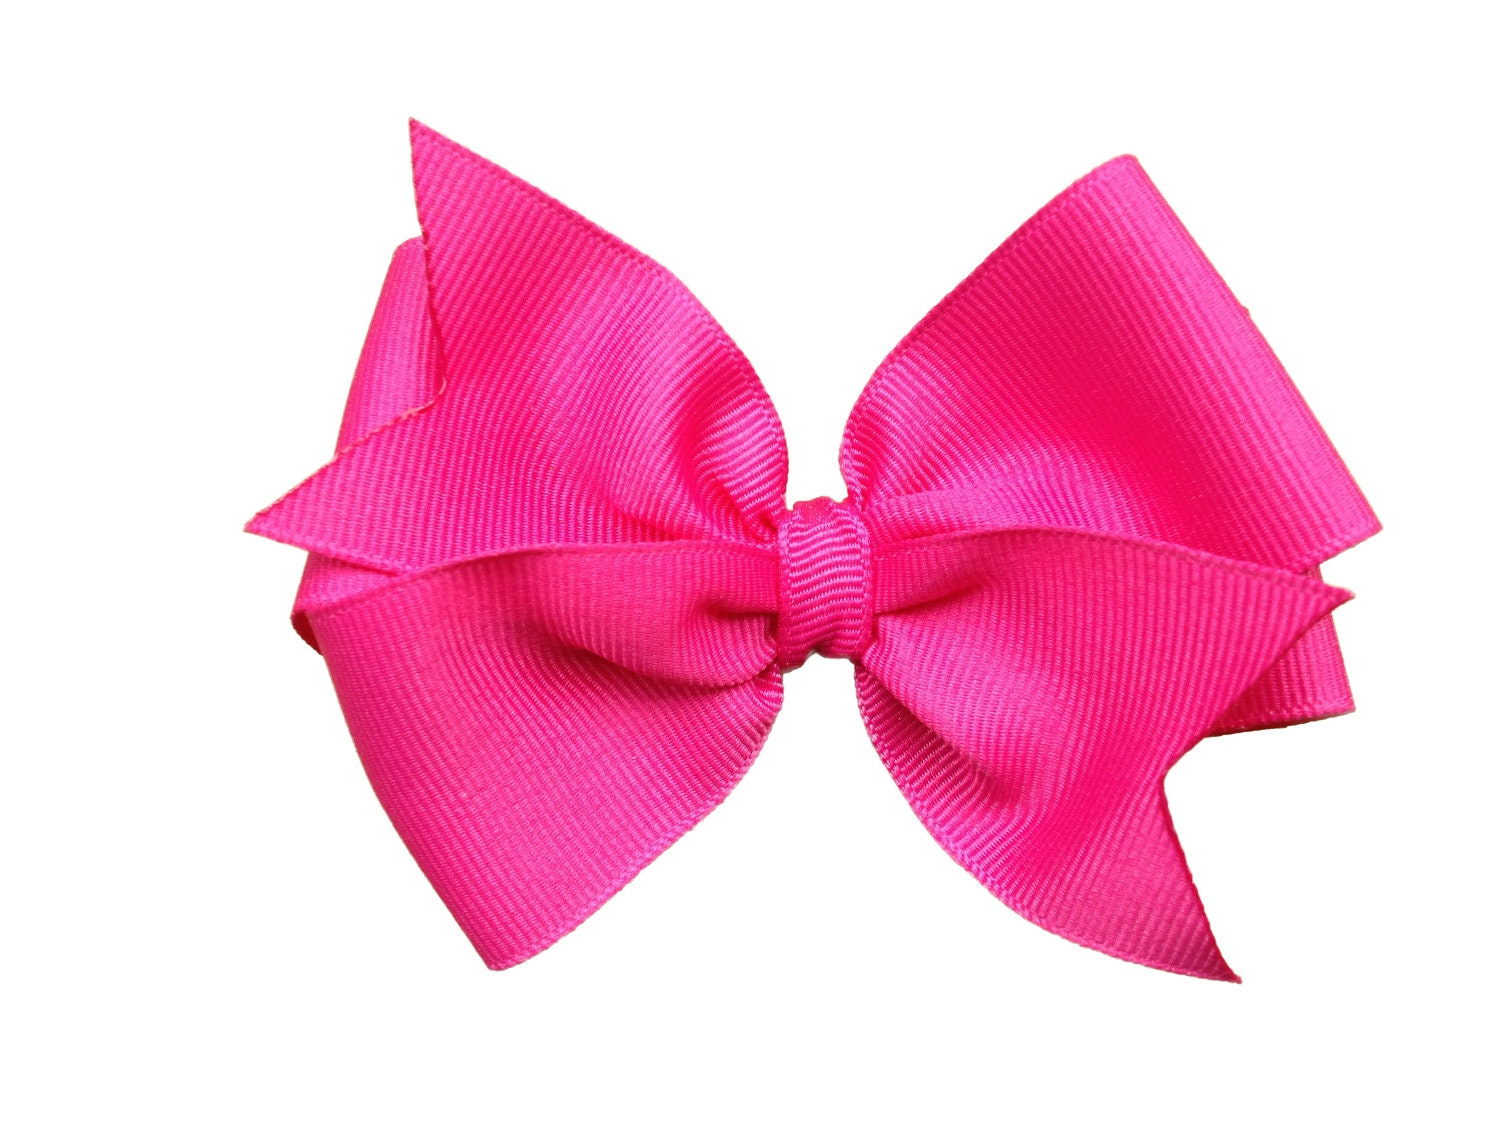 4 Inch Hot Pink Hair Bow Hot Pink Bow 4 Inch Bows Pinwheel